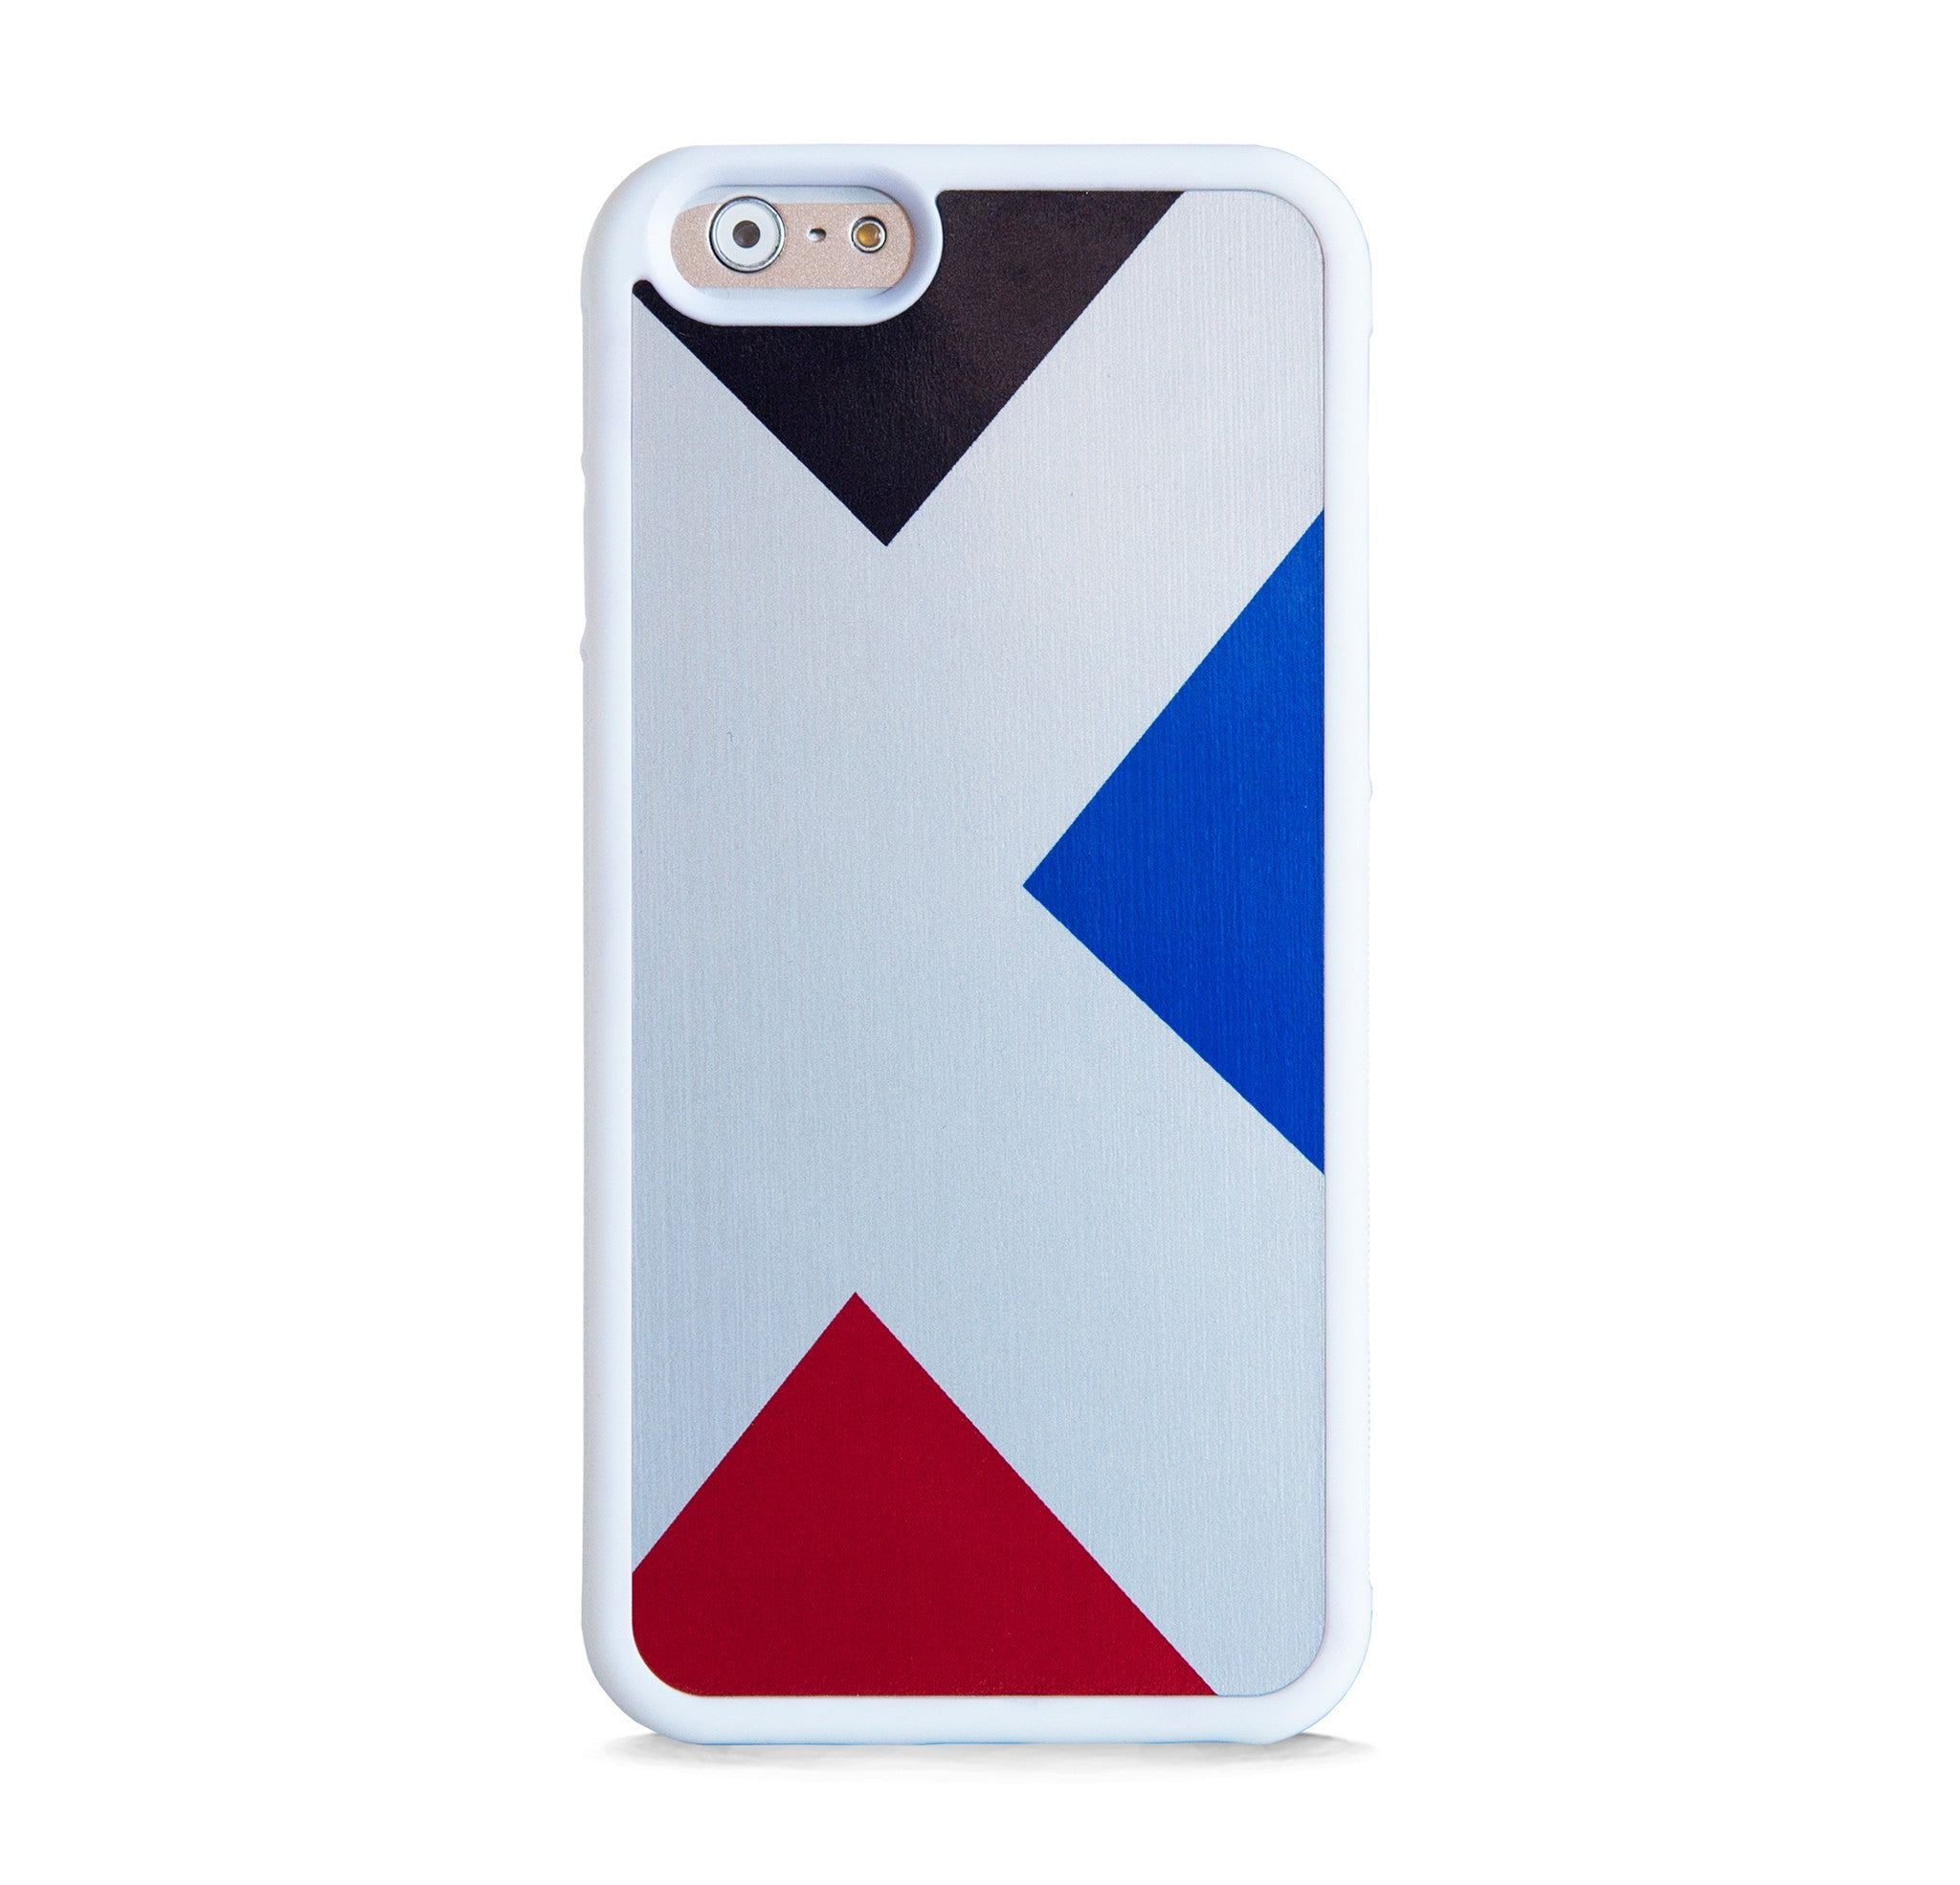 3 TRIANGLES ON SILVER FOR IPHONE 6/6s